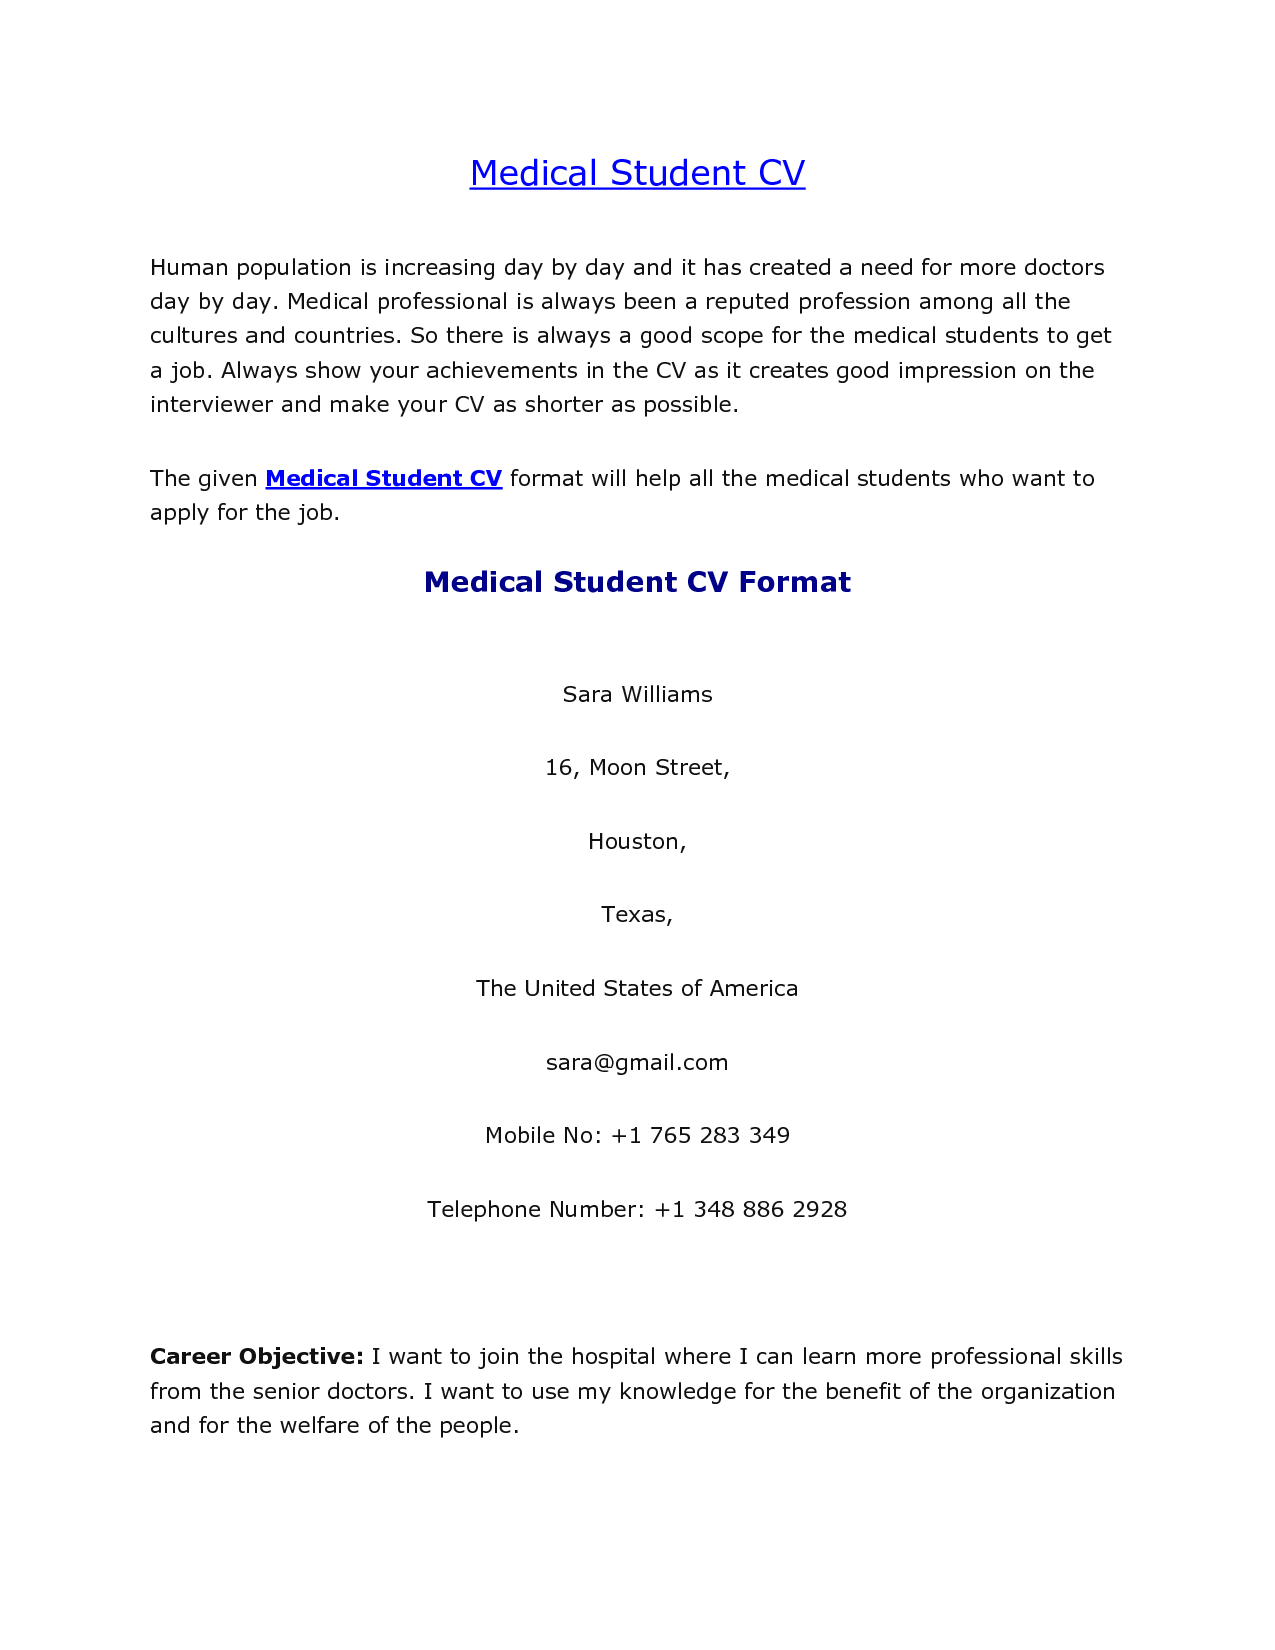 Medical Student CV Sample  Medical Professional Resume